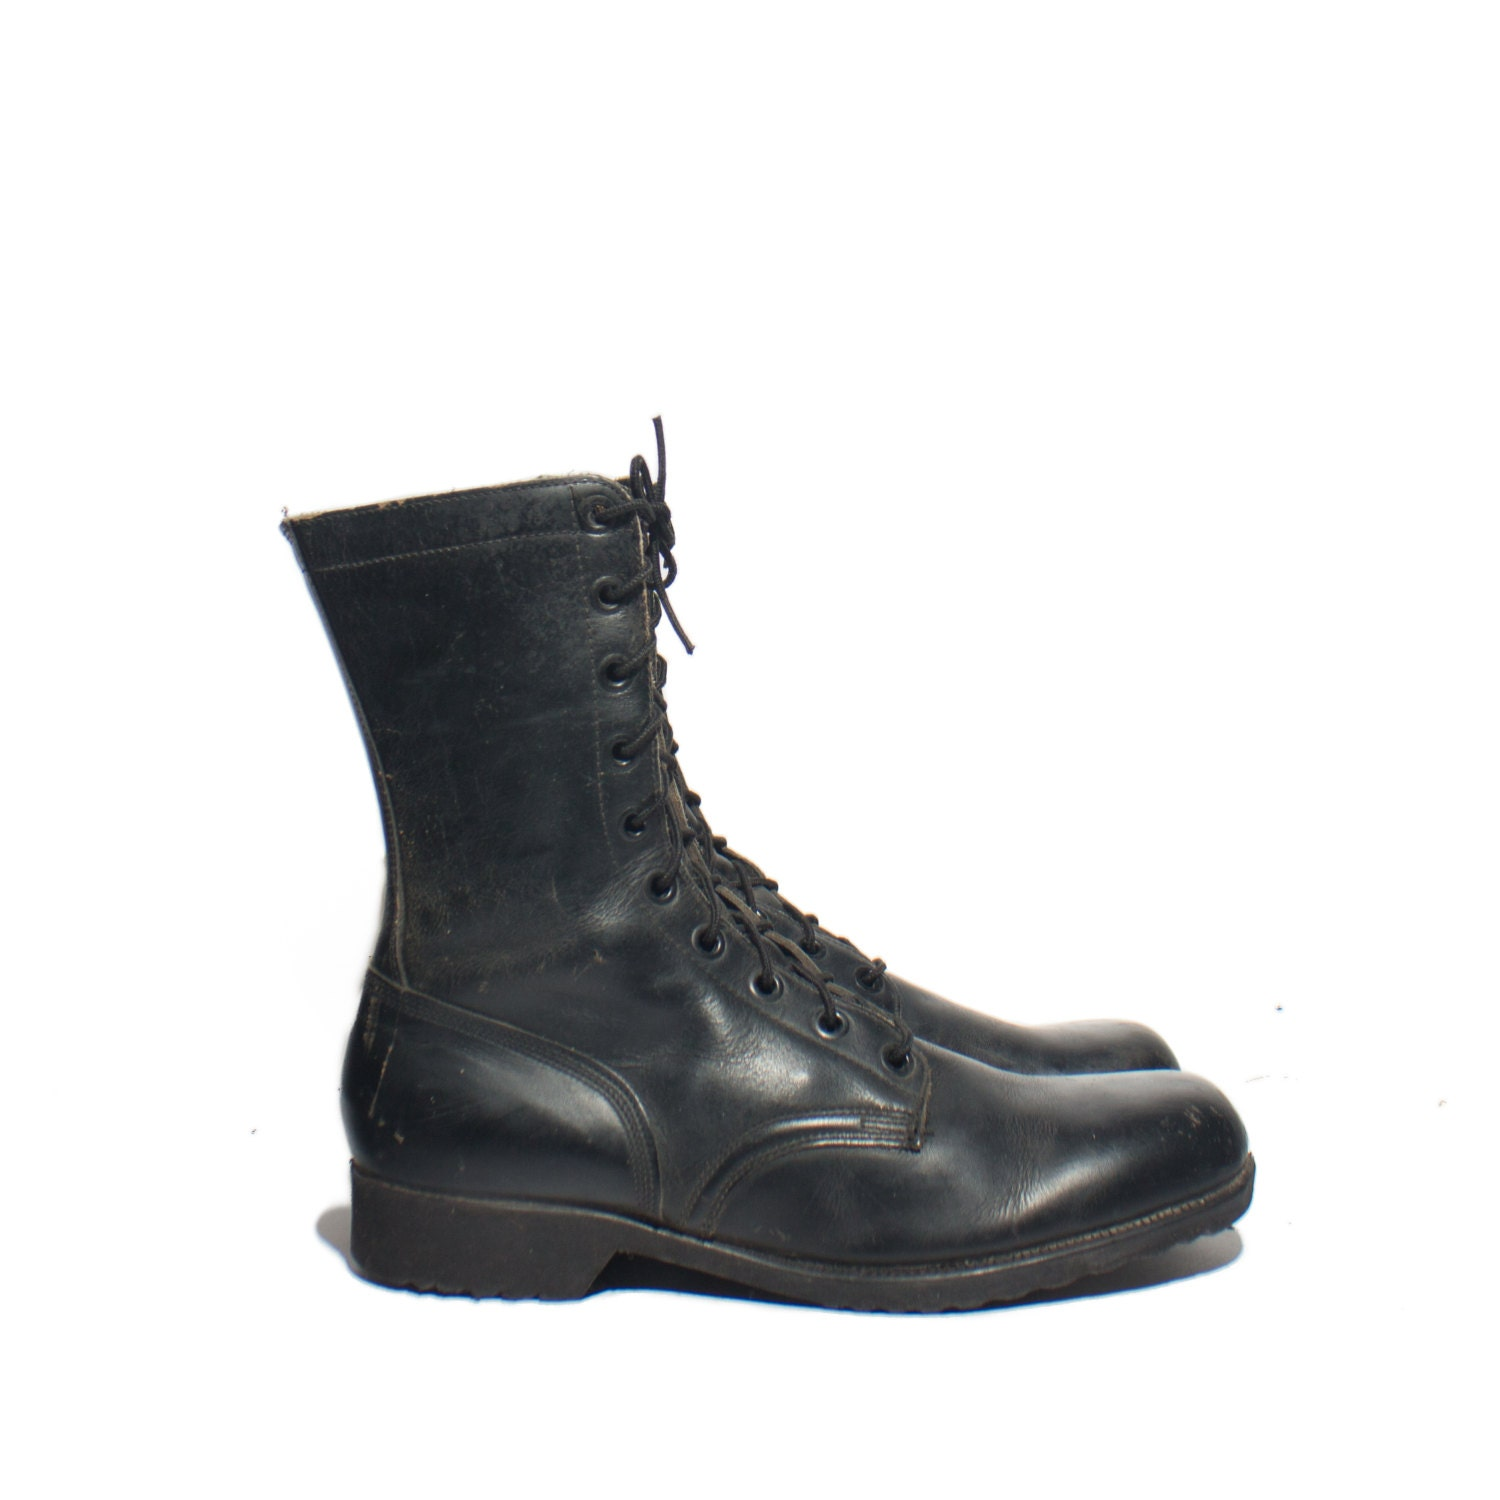 Belleville's most highly recognized boot, the ICONIC DES revolutionized military footwear when it was first introduced using the VANGUARD® premium cushioning sole system. This classic boot was able to be constructed with more of an athletic feel through the utilization of .